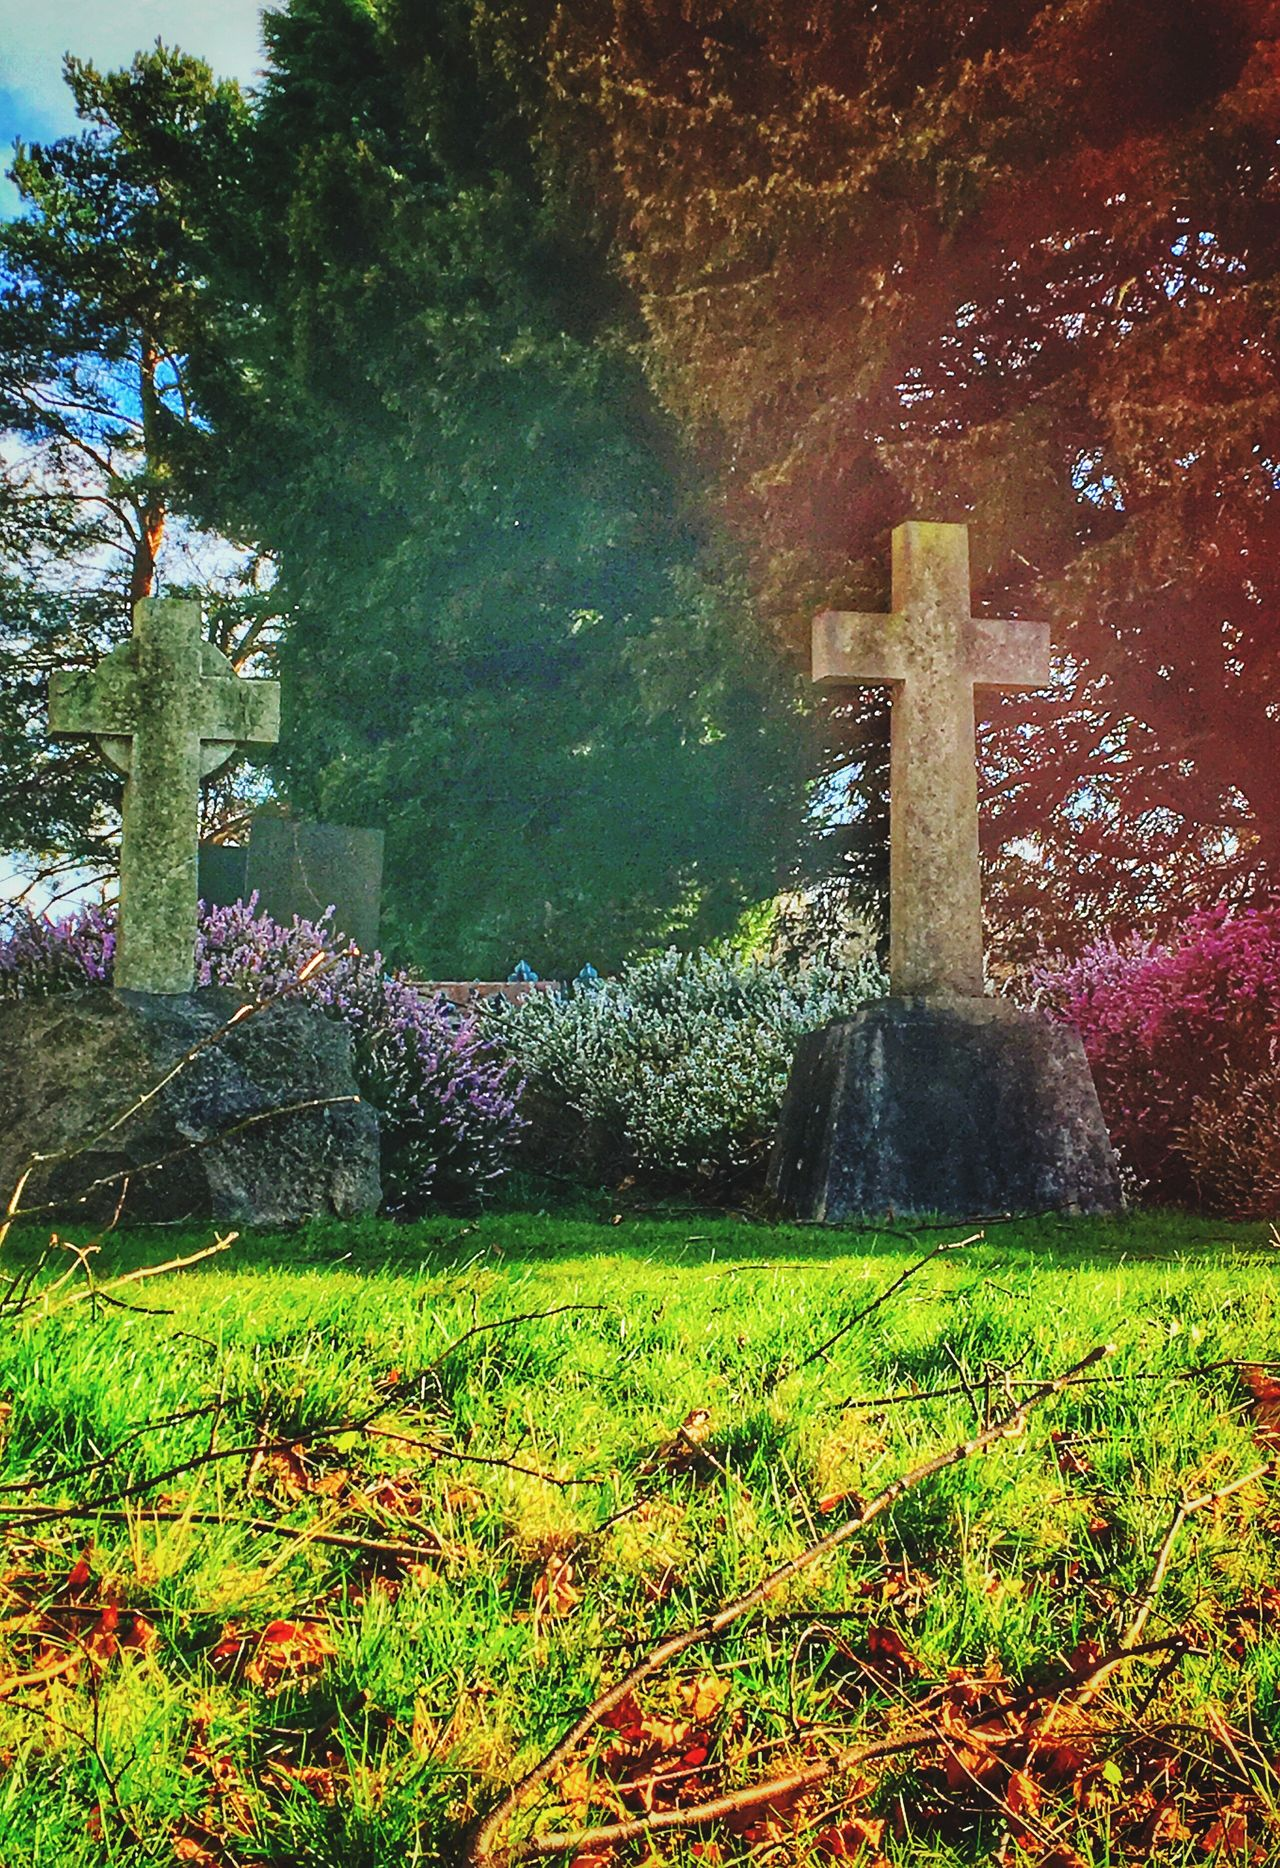 Calke abbey Tombstone Green Color Tree Nature Outdoors Beauty In Nature Cross Grave Graveyard Graveyard Beauty EyeEmNewHere EyeEmNewHere